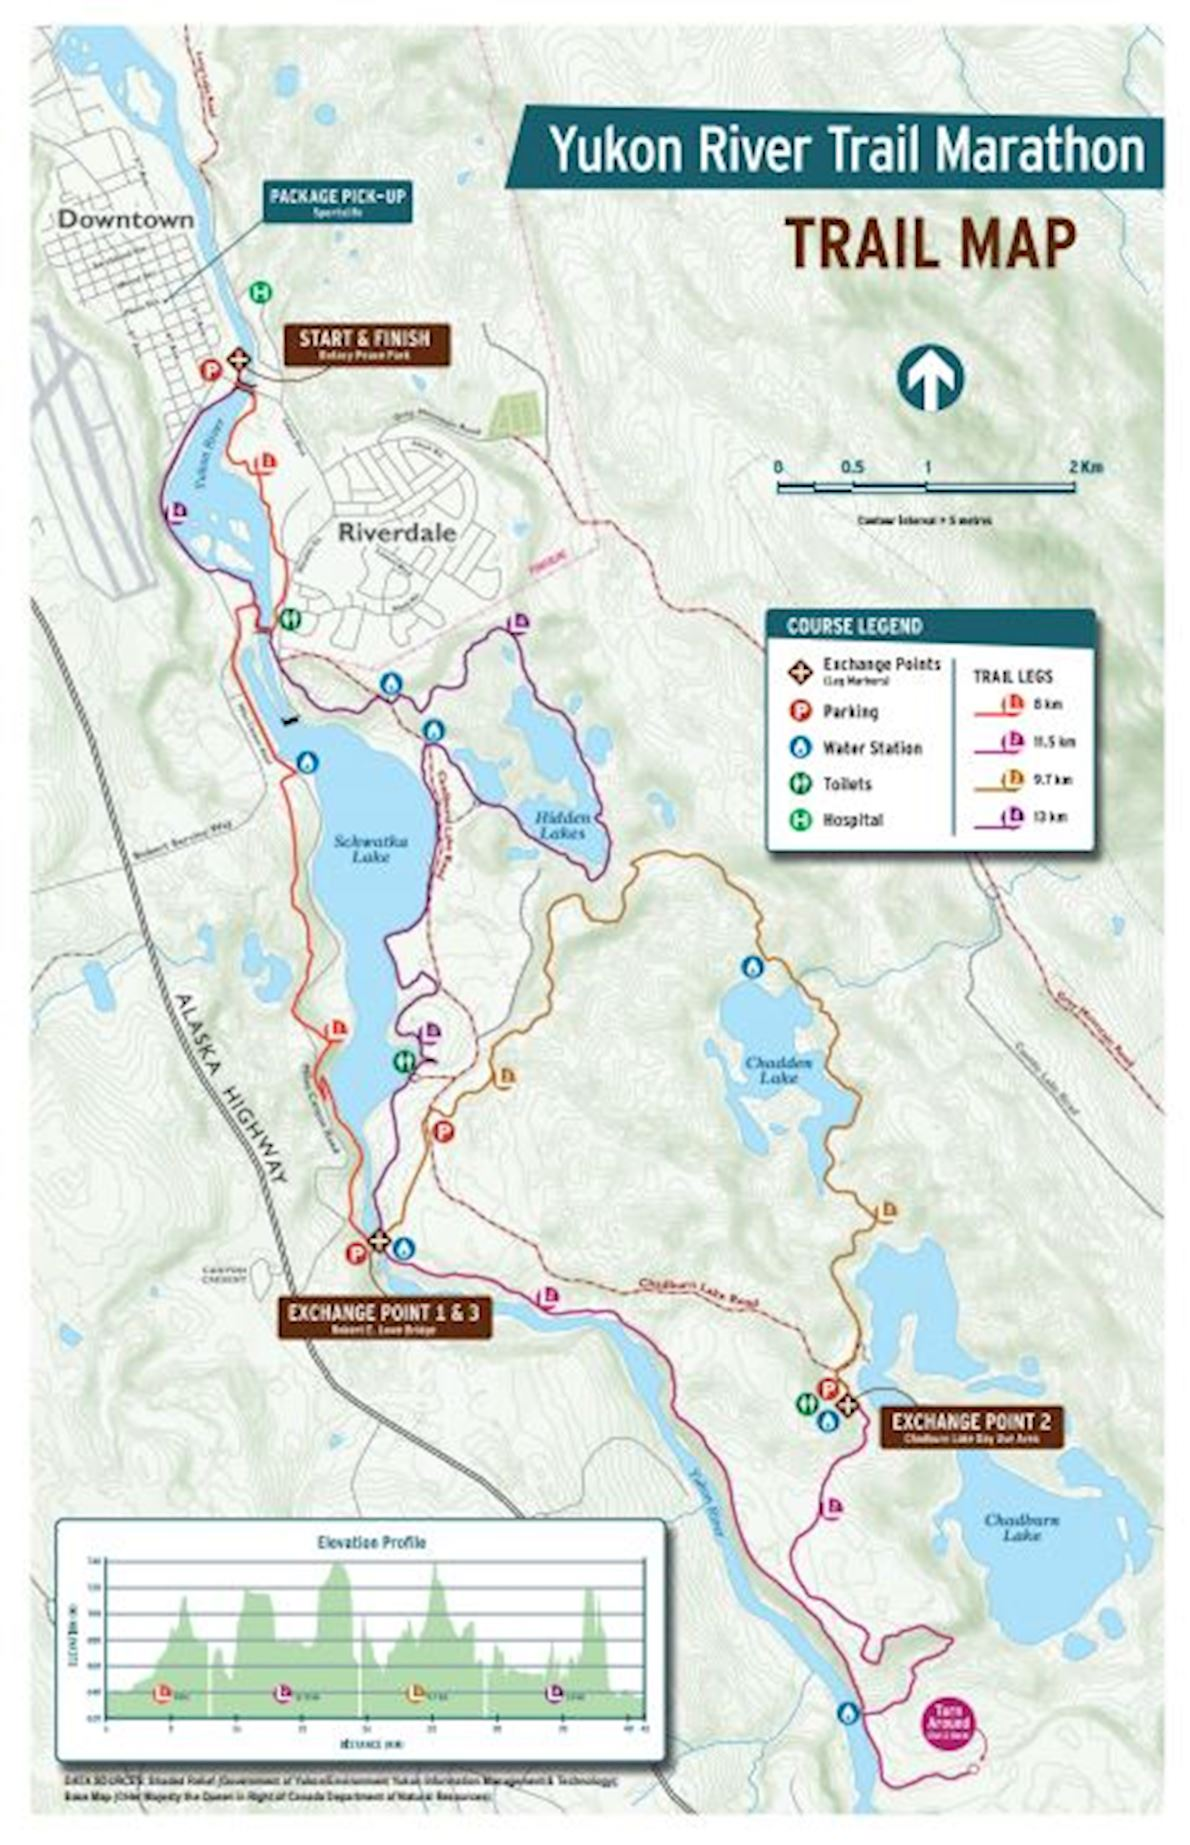 Yukon river trail marathon worlds marathons yukon river trail marathon route map gumiabroncs Image collections